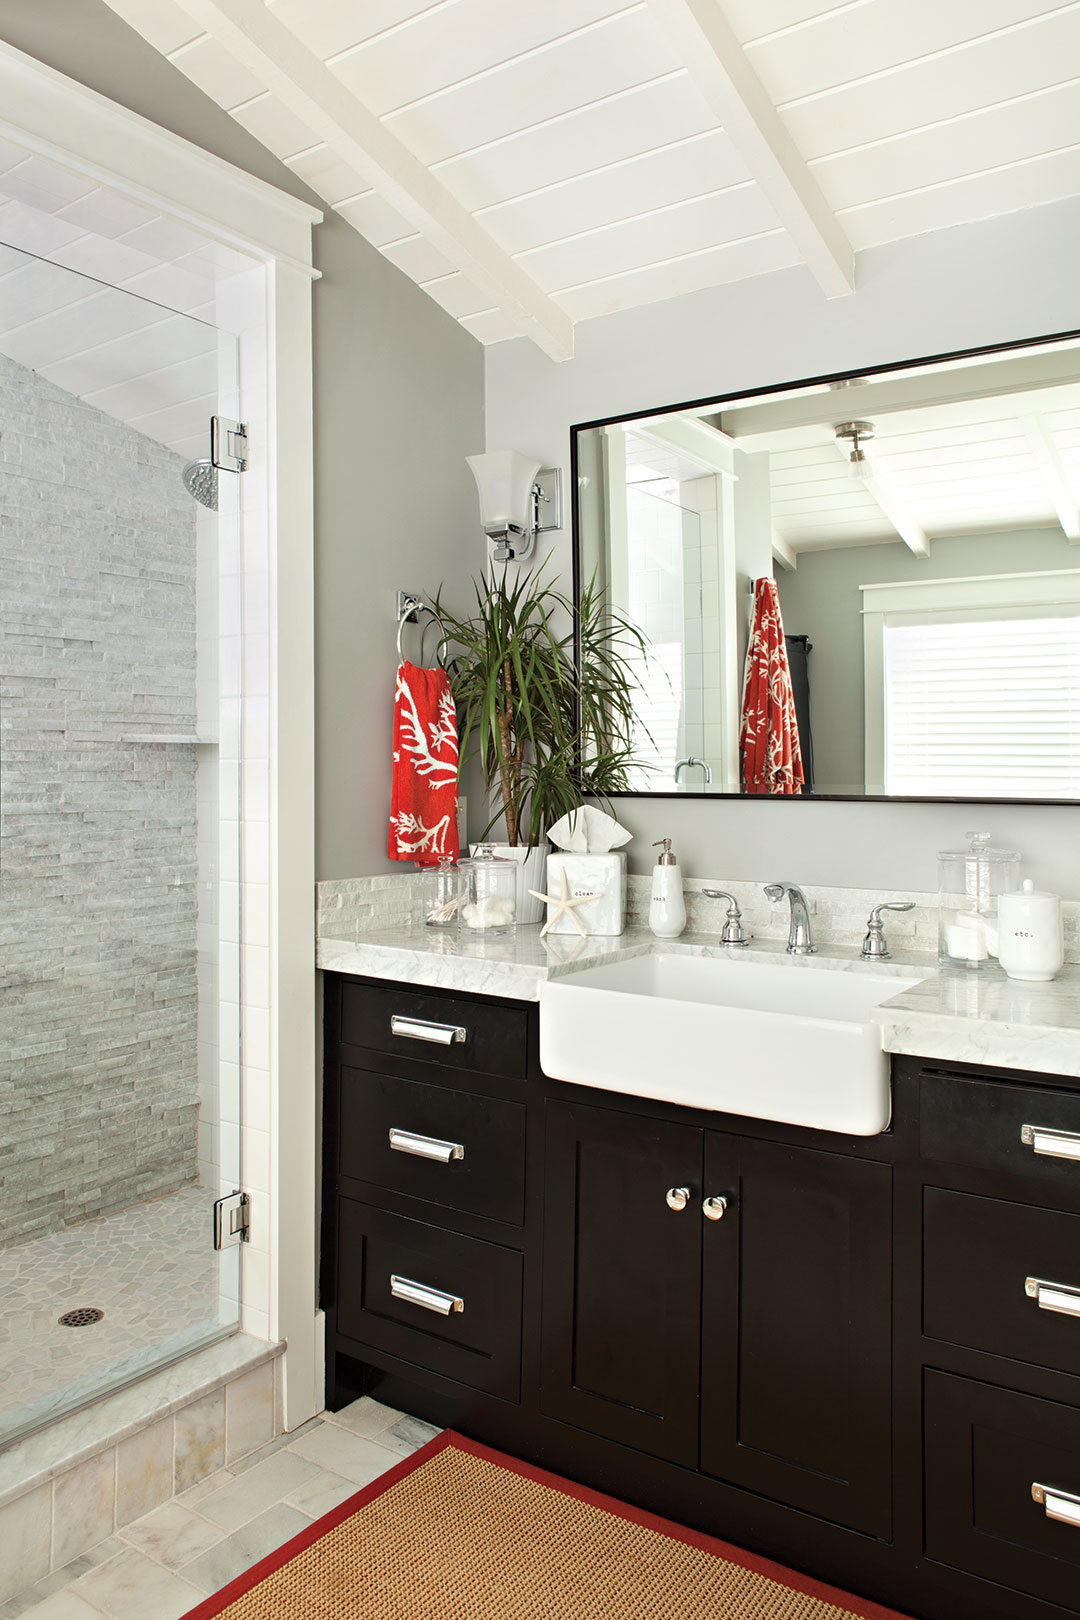 Master bathroom decor with dark wood cabinetry and a gray color scheme.